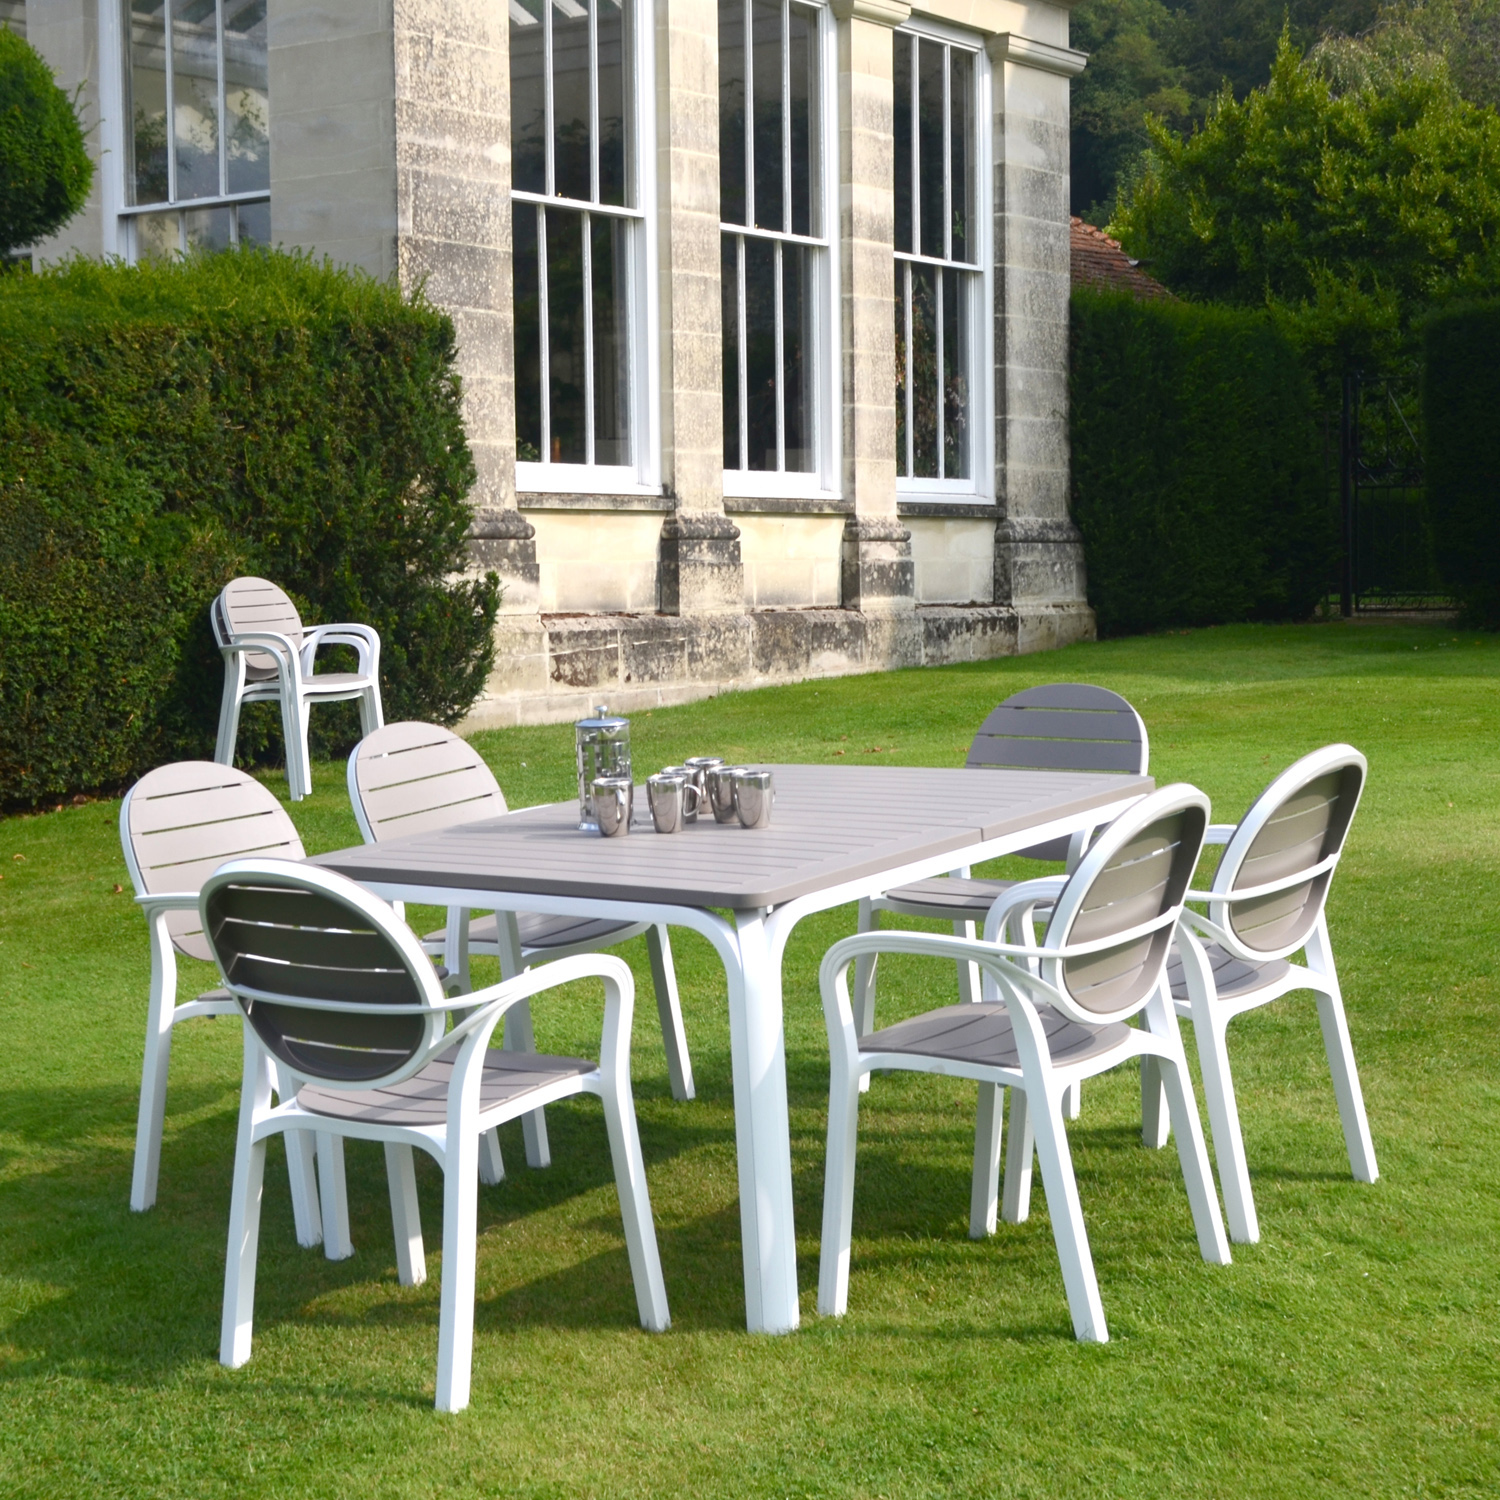 Turtle dove alloro standard with 06 turtle dove palma chairs for Plastic garden furniture